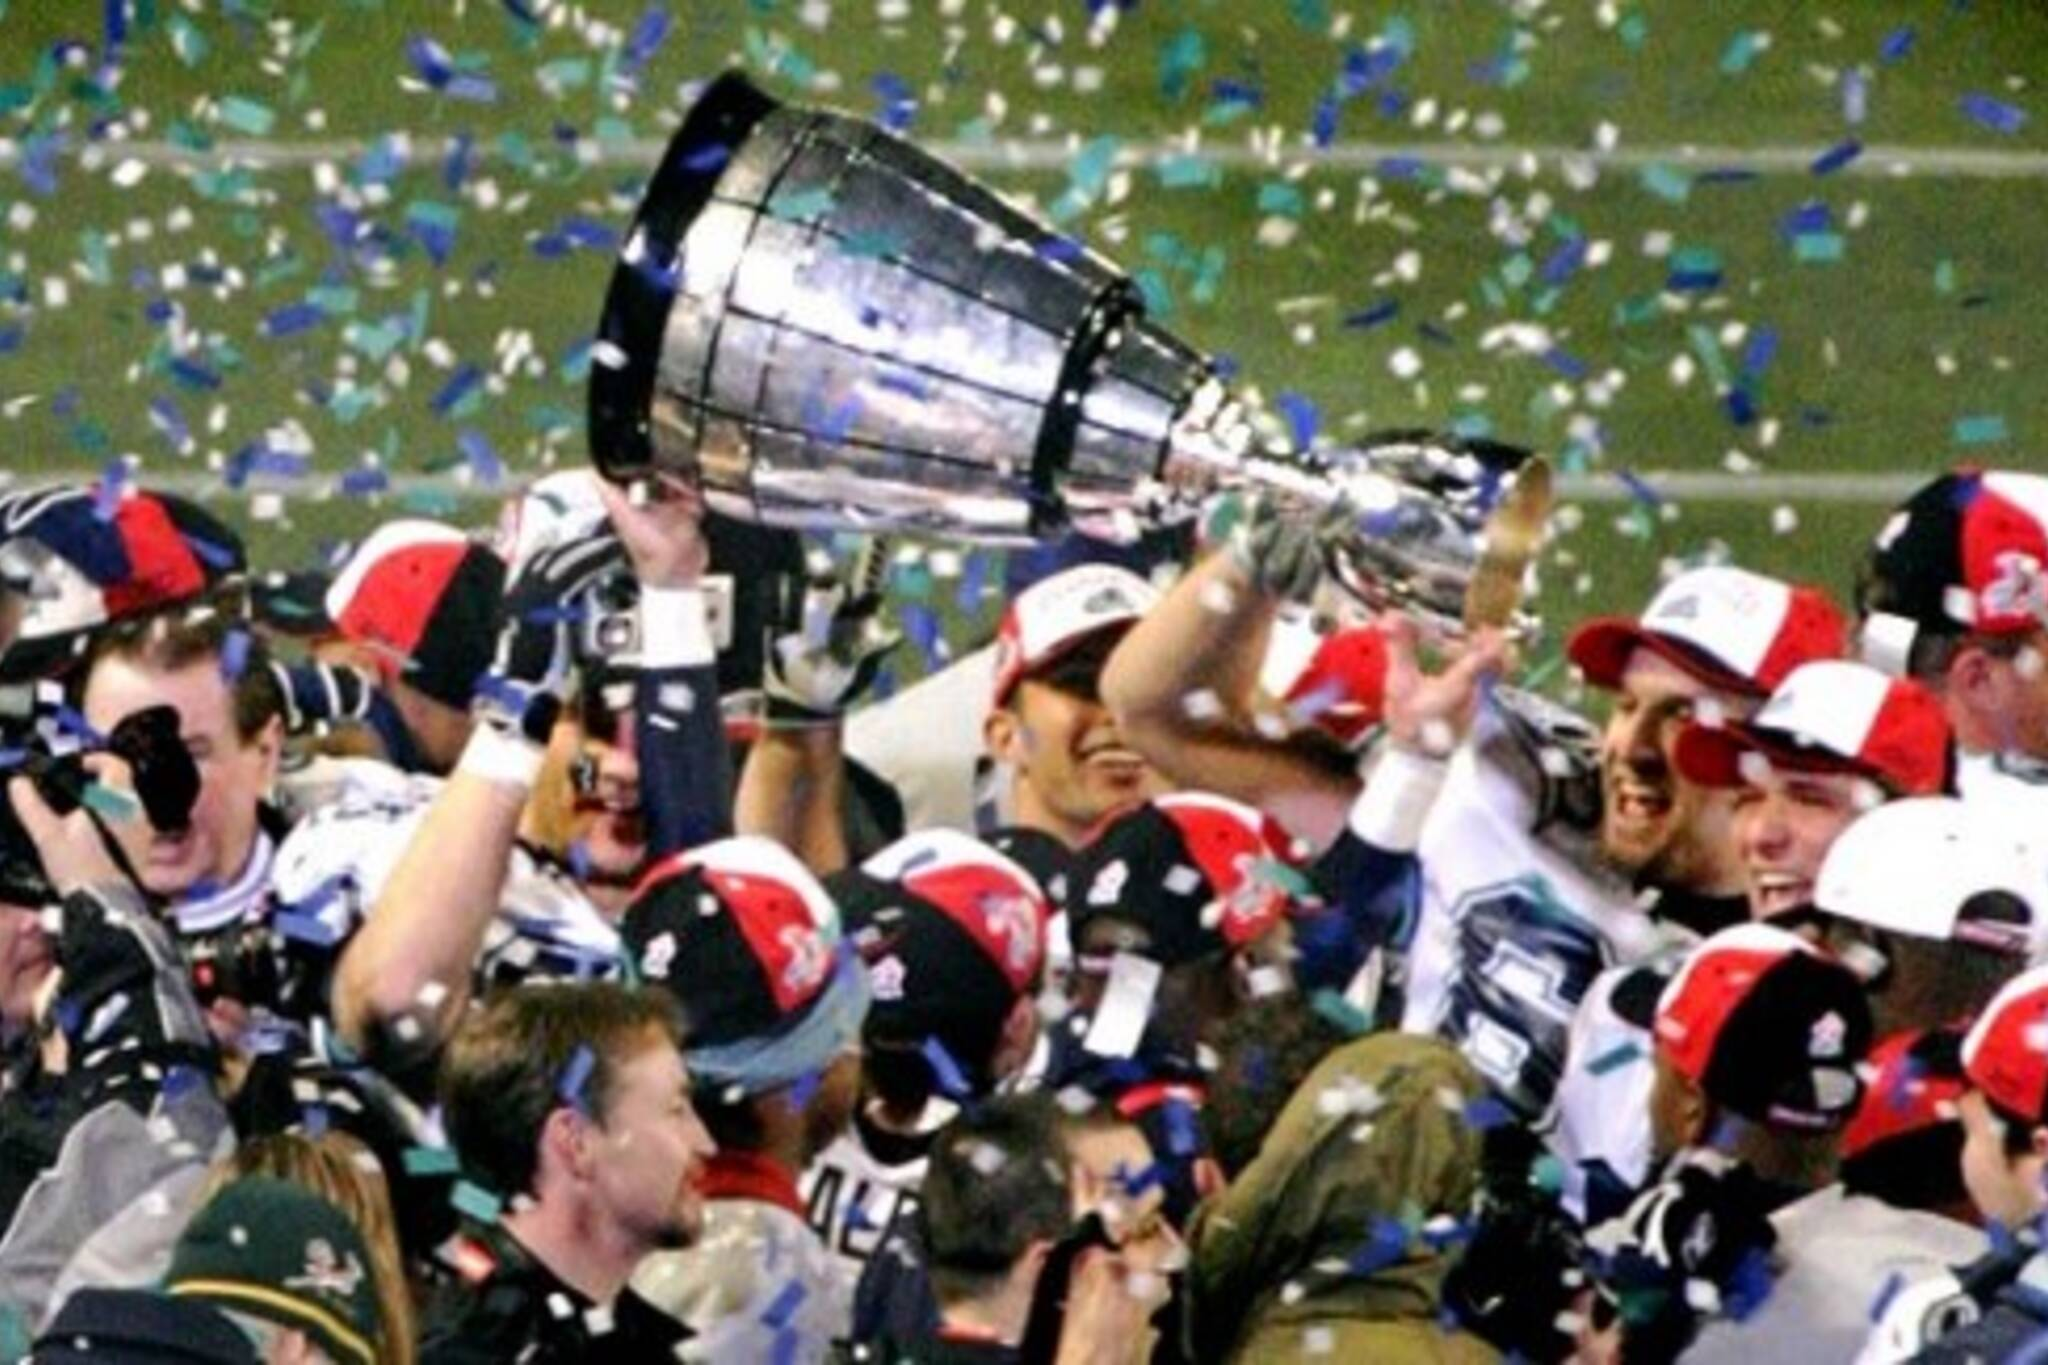 Argos celebrate Grey Cup victory in 2004 under coach Pinball Clemons, hired by J.I. Albrecht